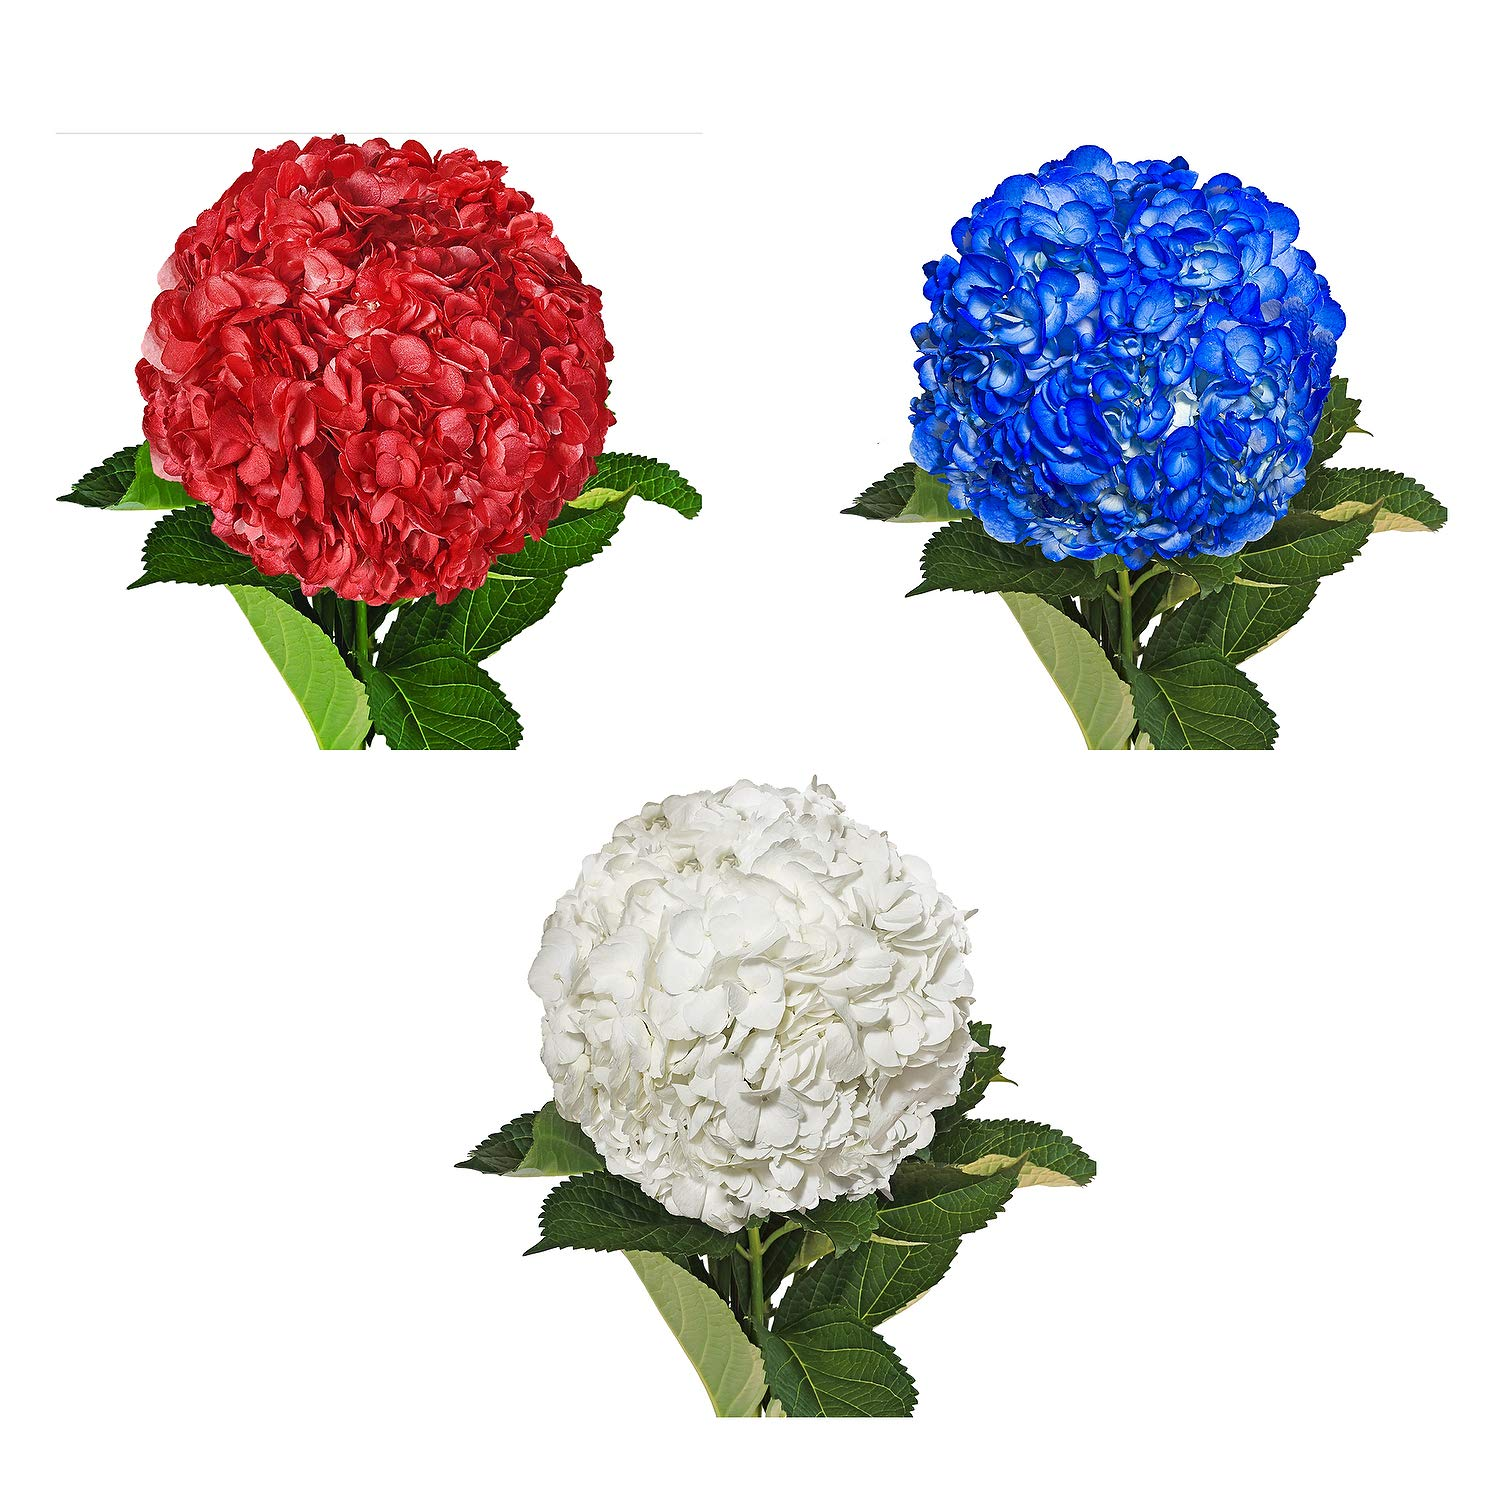 Farm Fresh Natural Painted White, Red & Blue Hydrangeas - Pack 15 by Bloomingmore (Image #1)